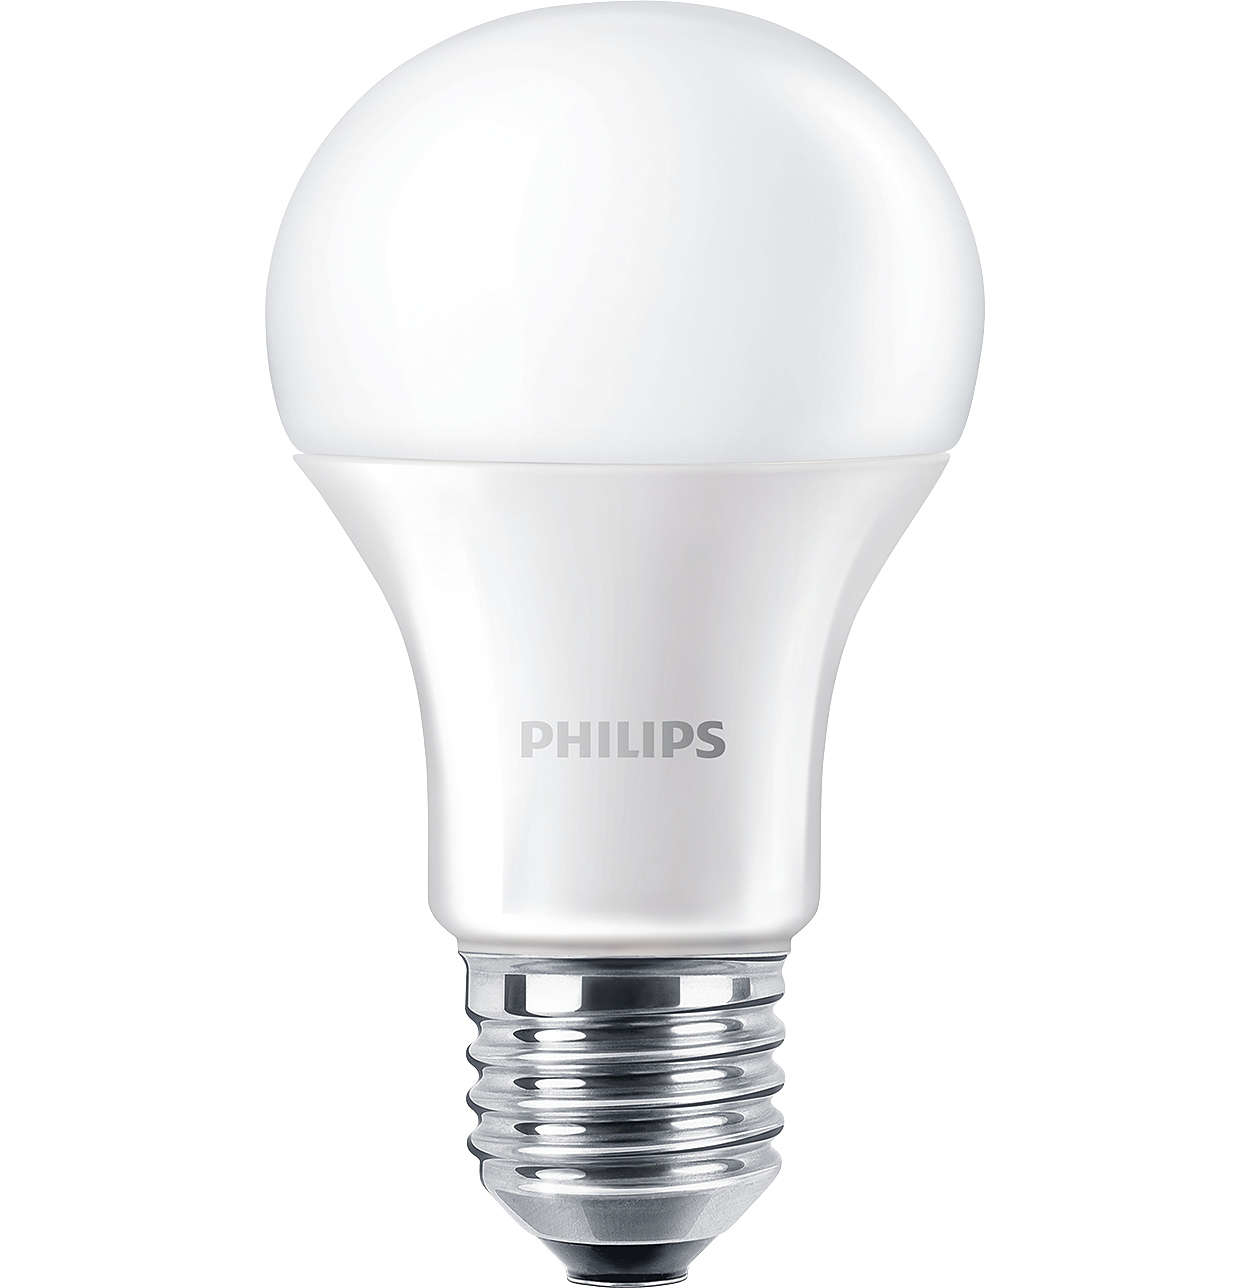 Philips - Lampadina LED - Core40830